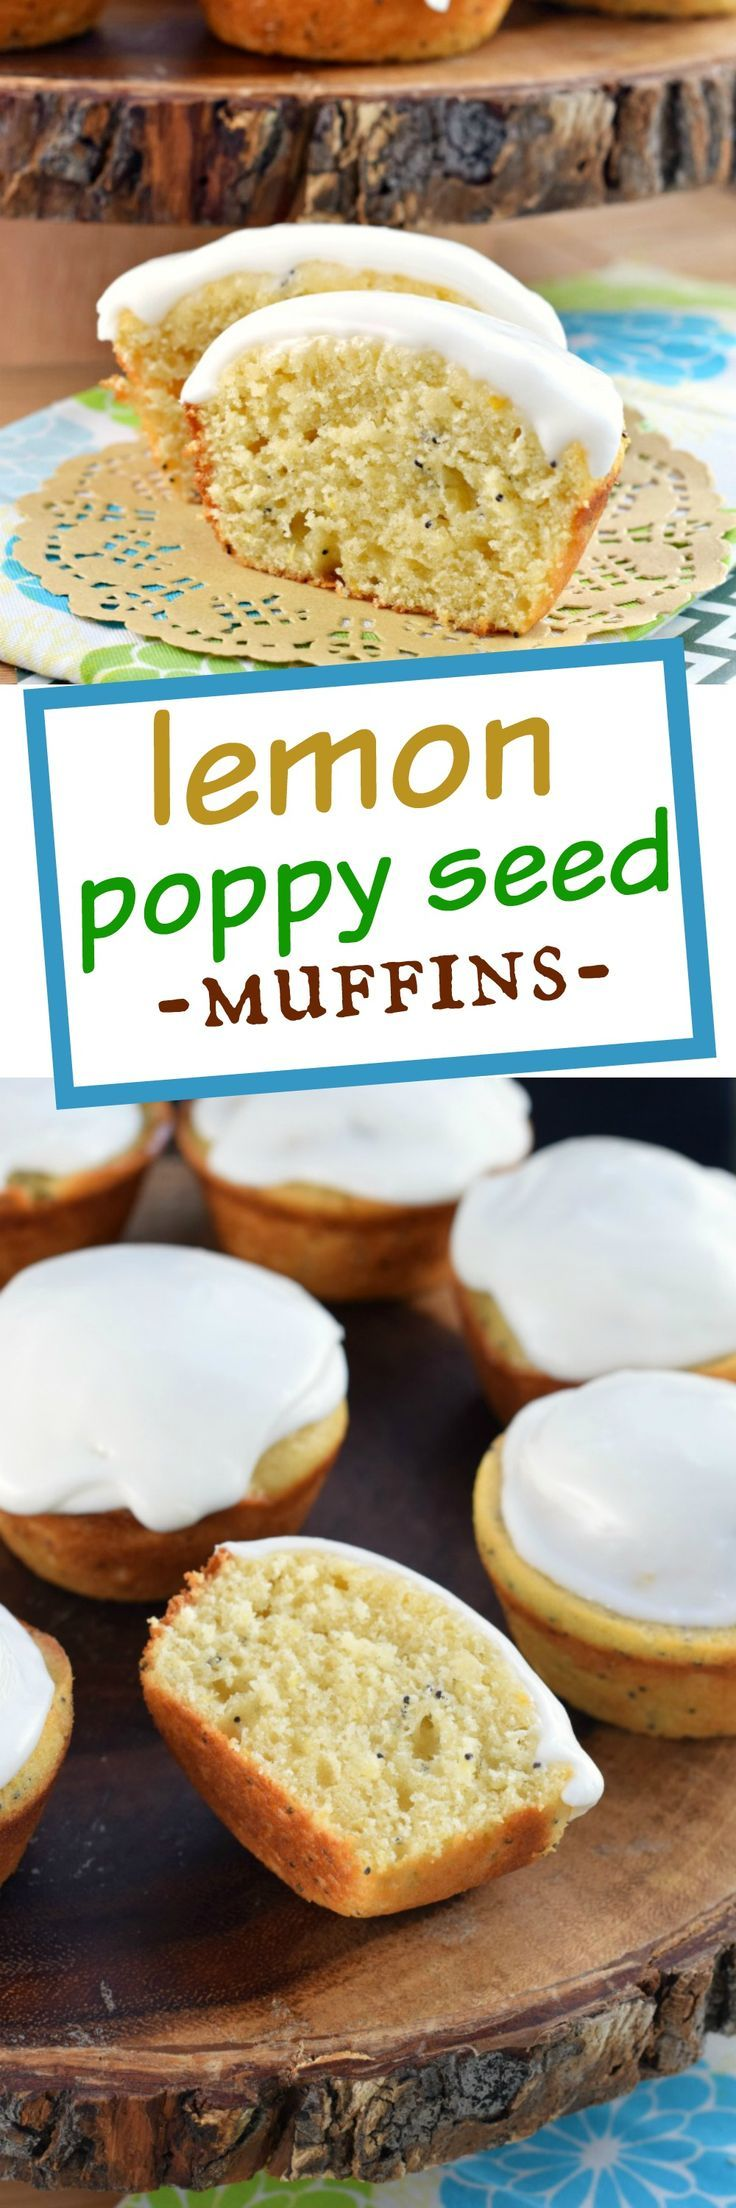 ... Cranberry orange muffins, Lemon raspberry muffins and Streusel topping